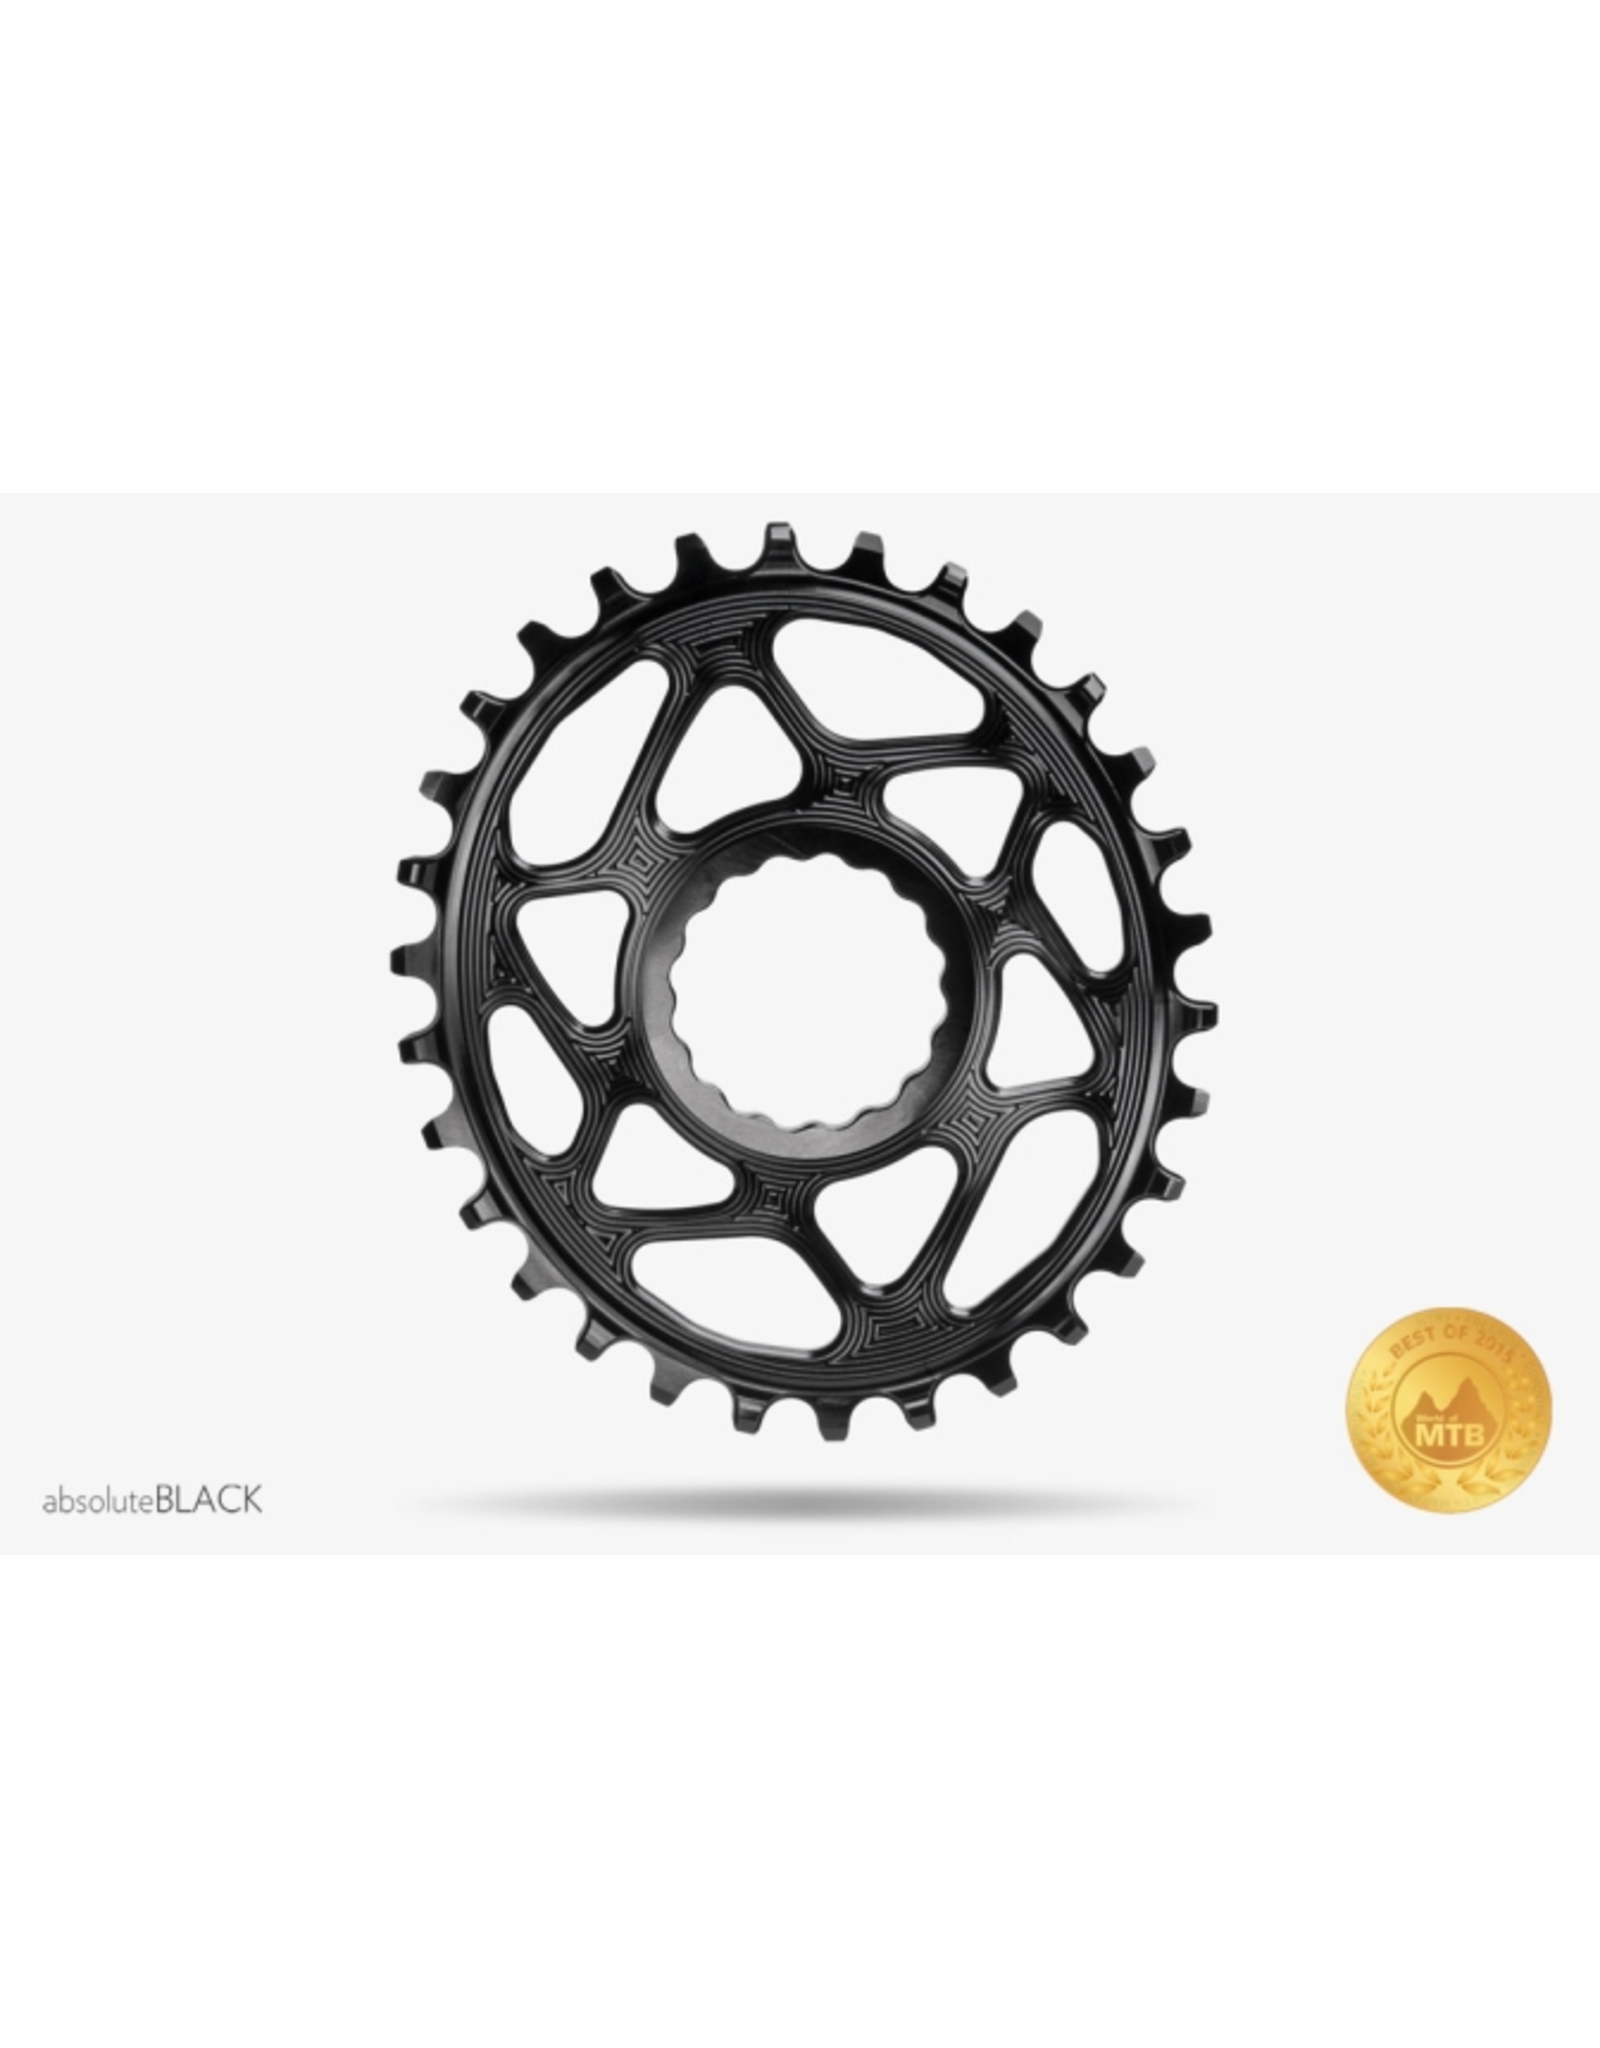 ABSOLUTE BLACK CHAINRING ABSOLUTE BLACK OVAL RACEFACE BOOST CINCH DIRECT MOUNT 34T BLACK